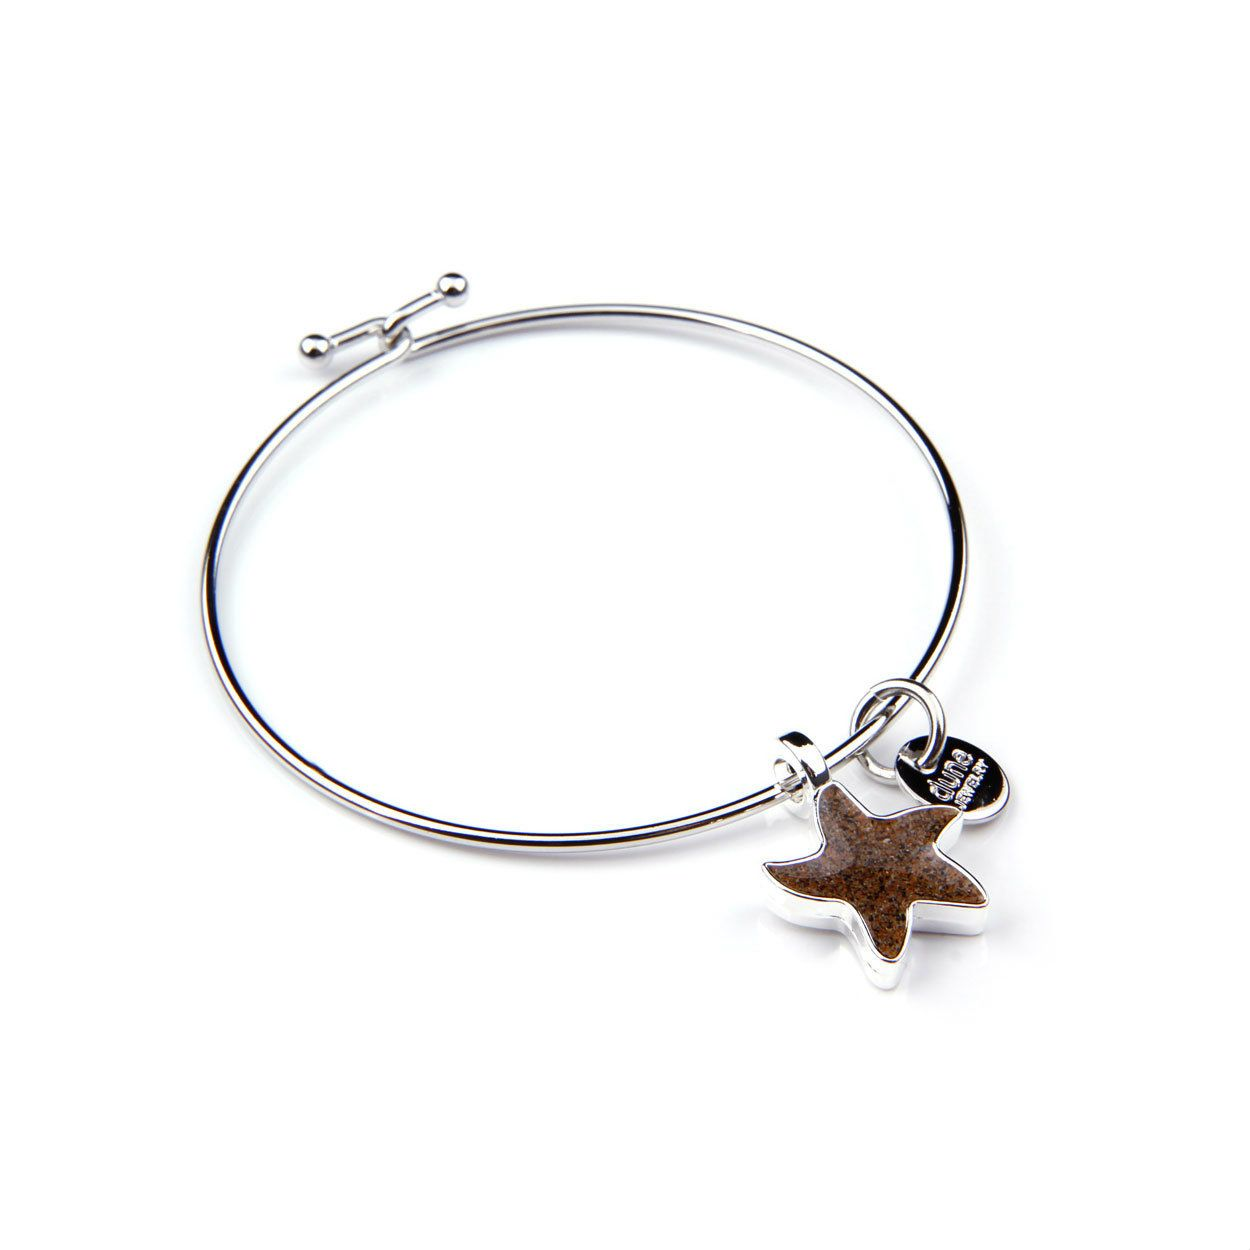 Starfish Key West Beach Sand Jewelry Is A Unique Gift For Anyone Who Loves The